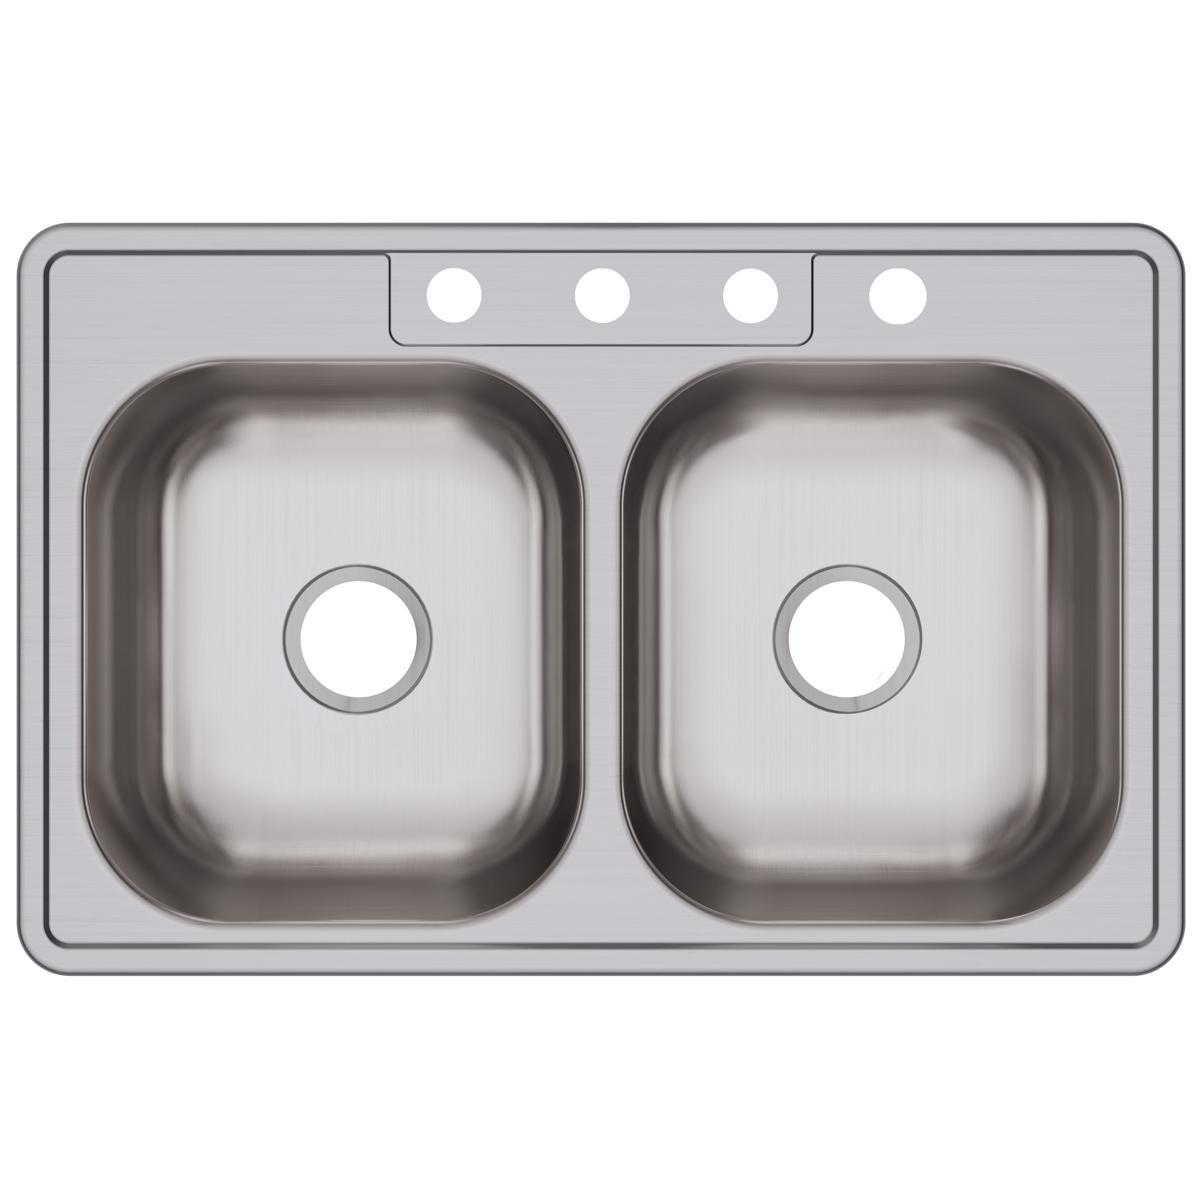 "Elkay Dayton Stainless Steel 33"" x 21-1/4"" x 6-9/16"", Equal Double Bowl Drop-in Sink-DirectSinks"